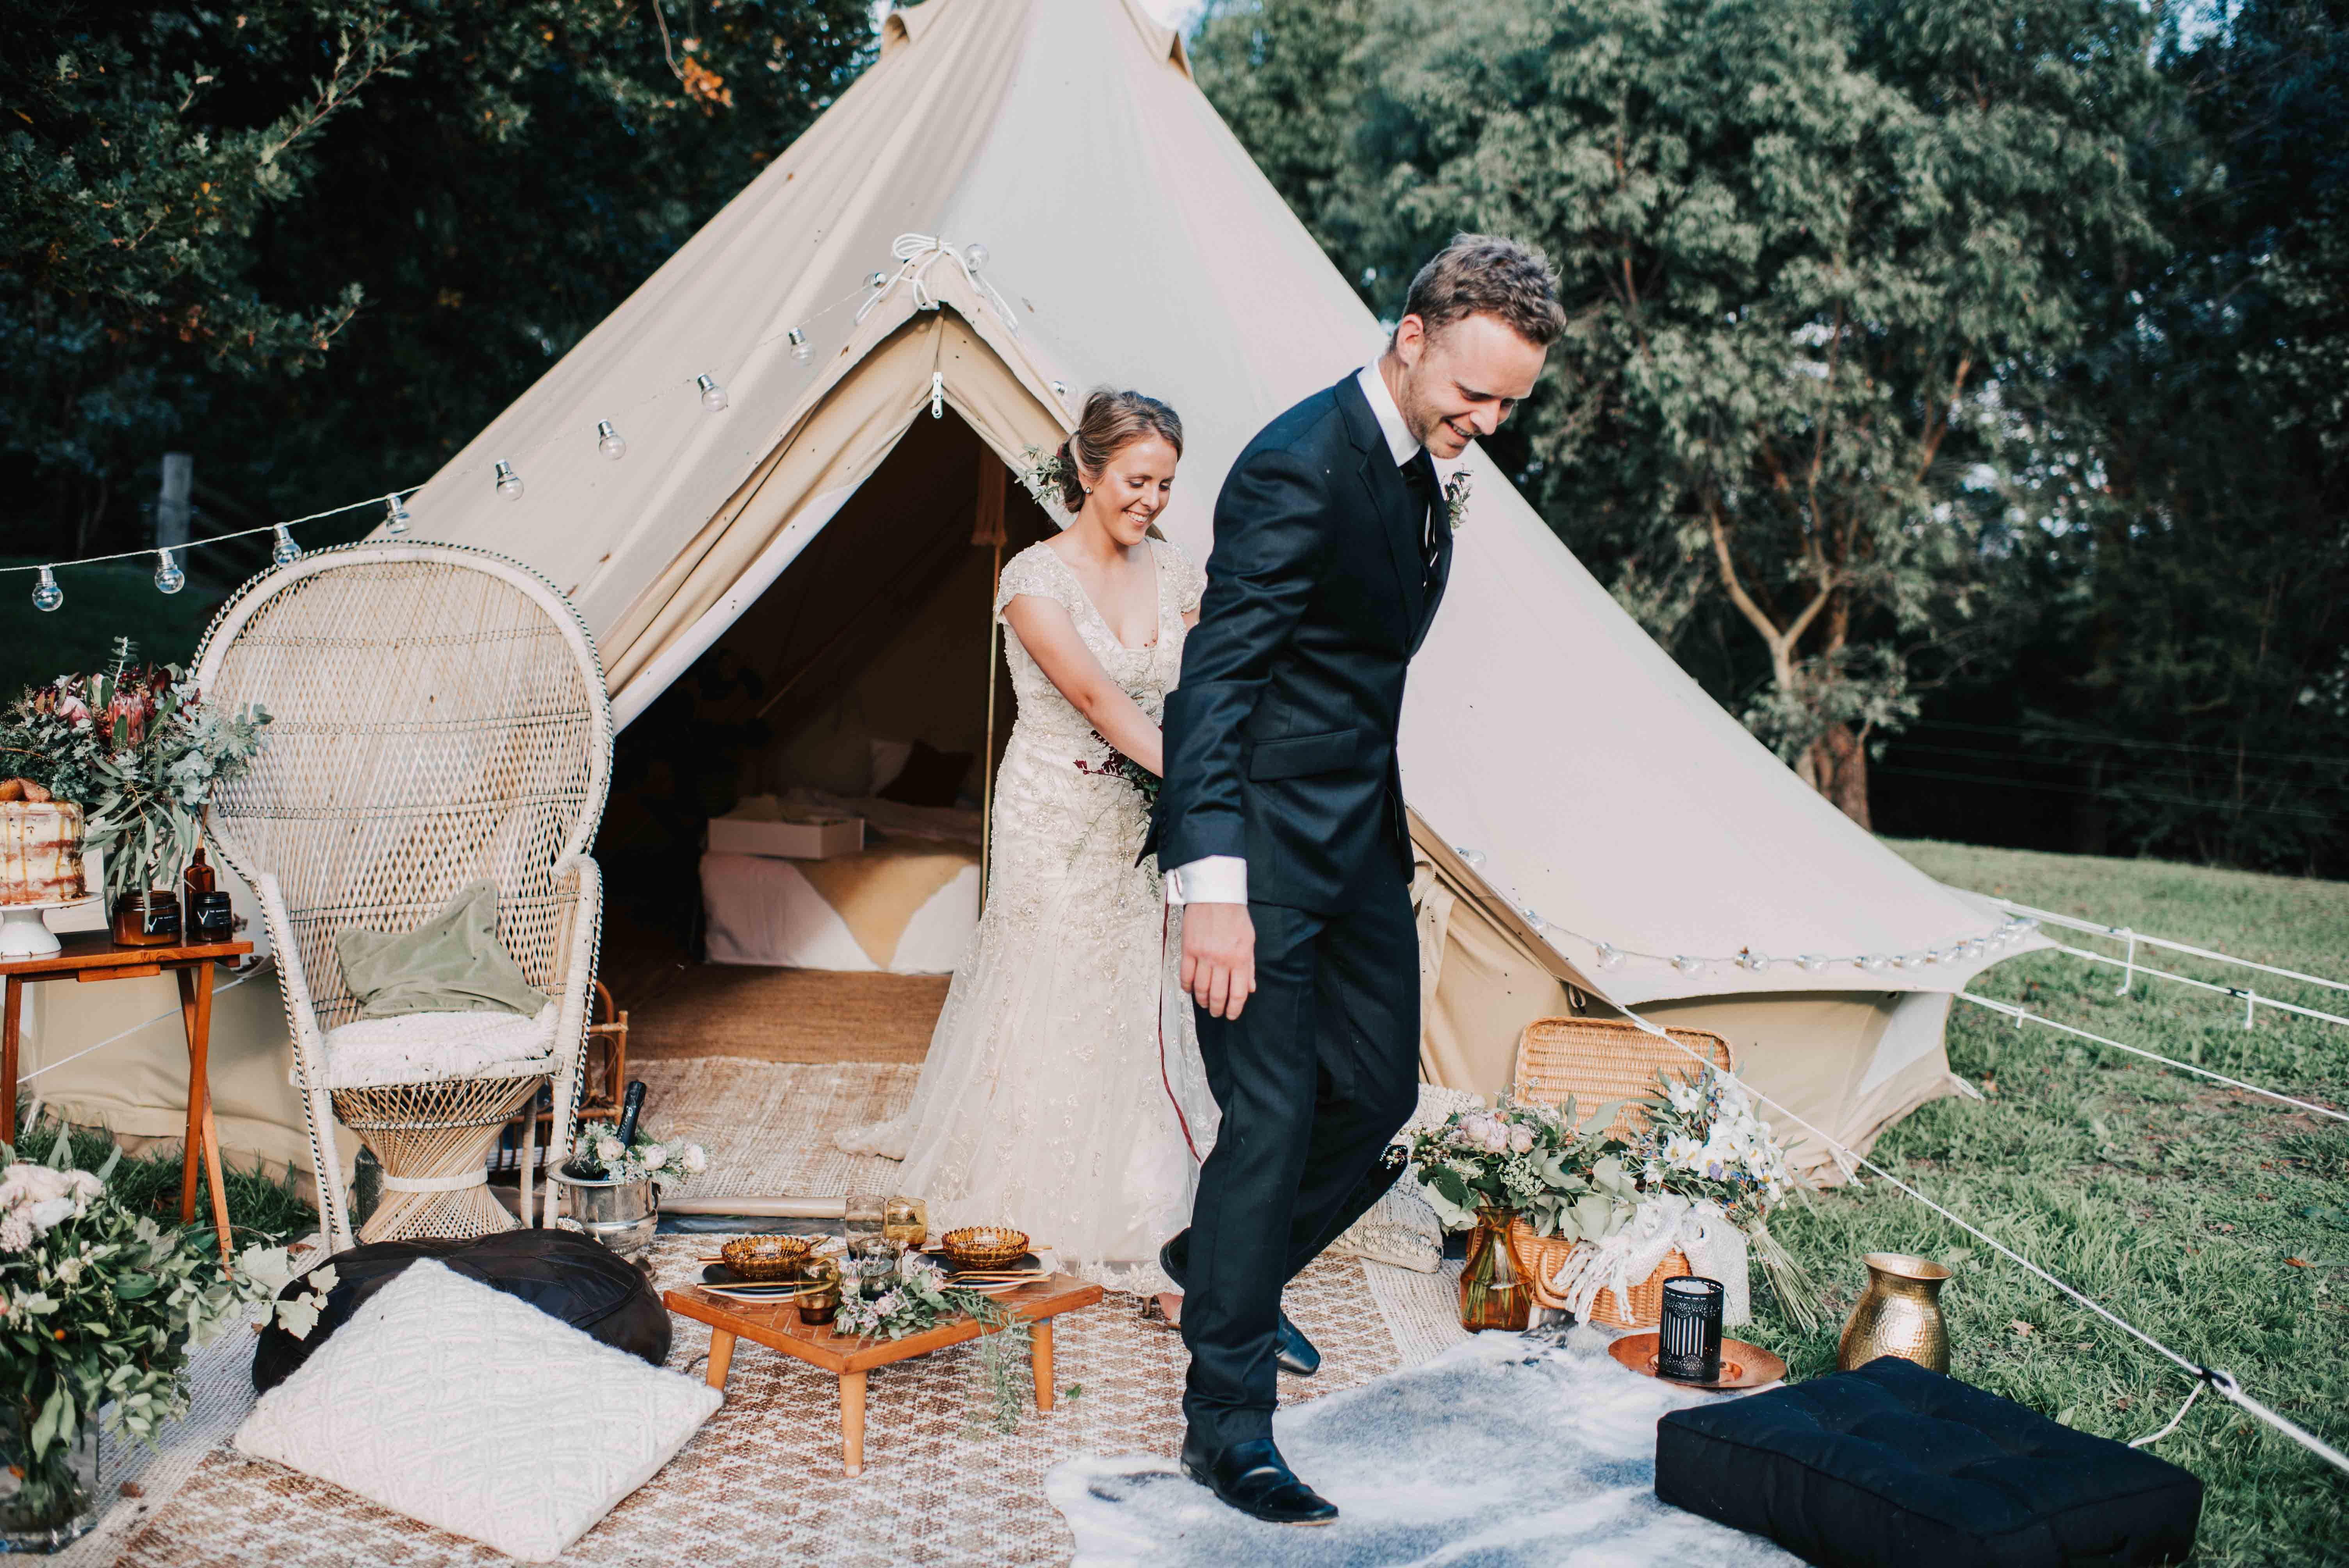 Bell Tent Glamping Elopement Packages